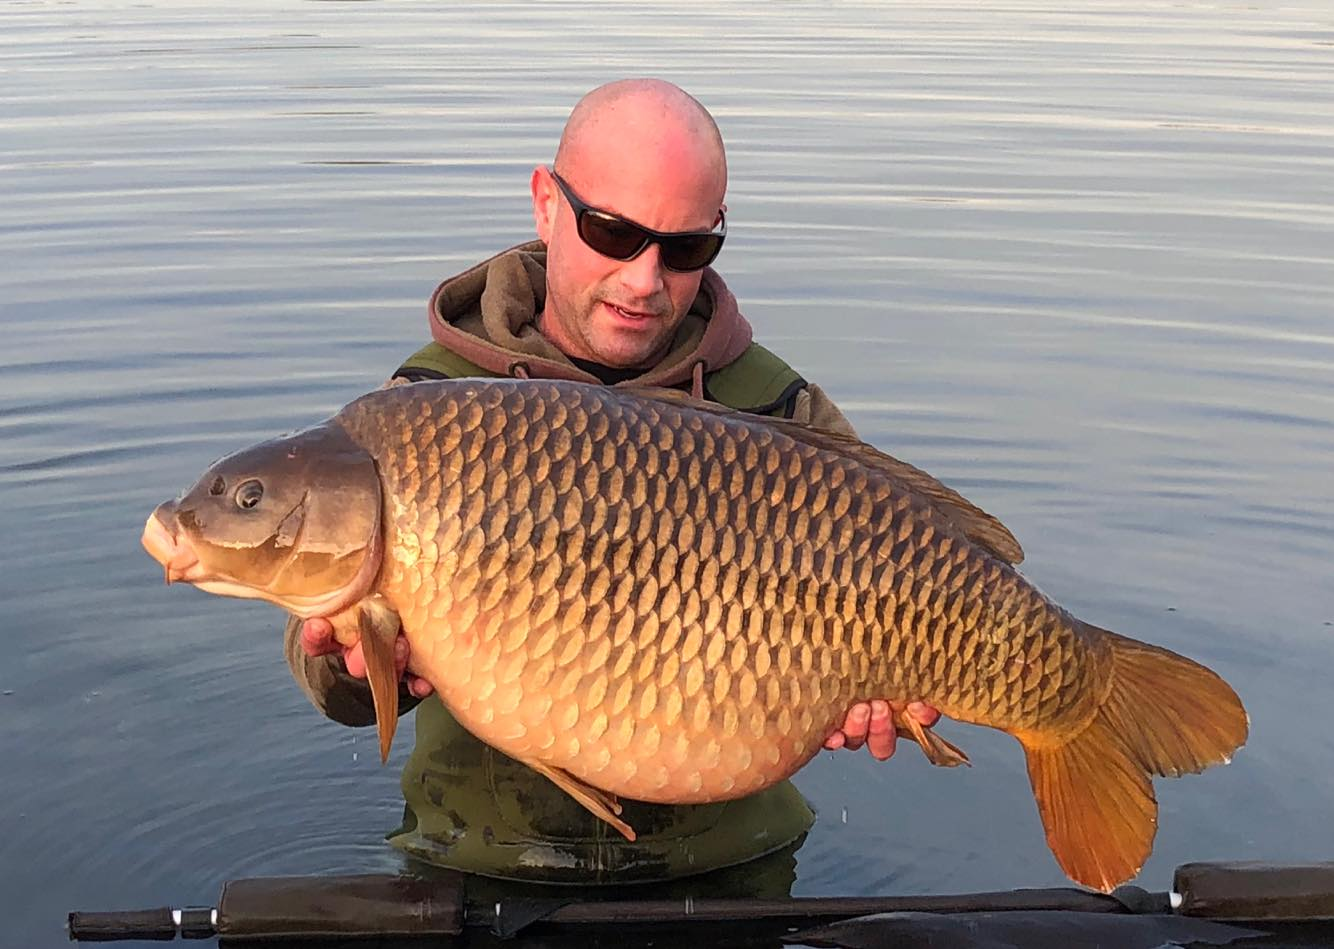 …along with this 42lb common